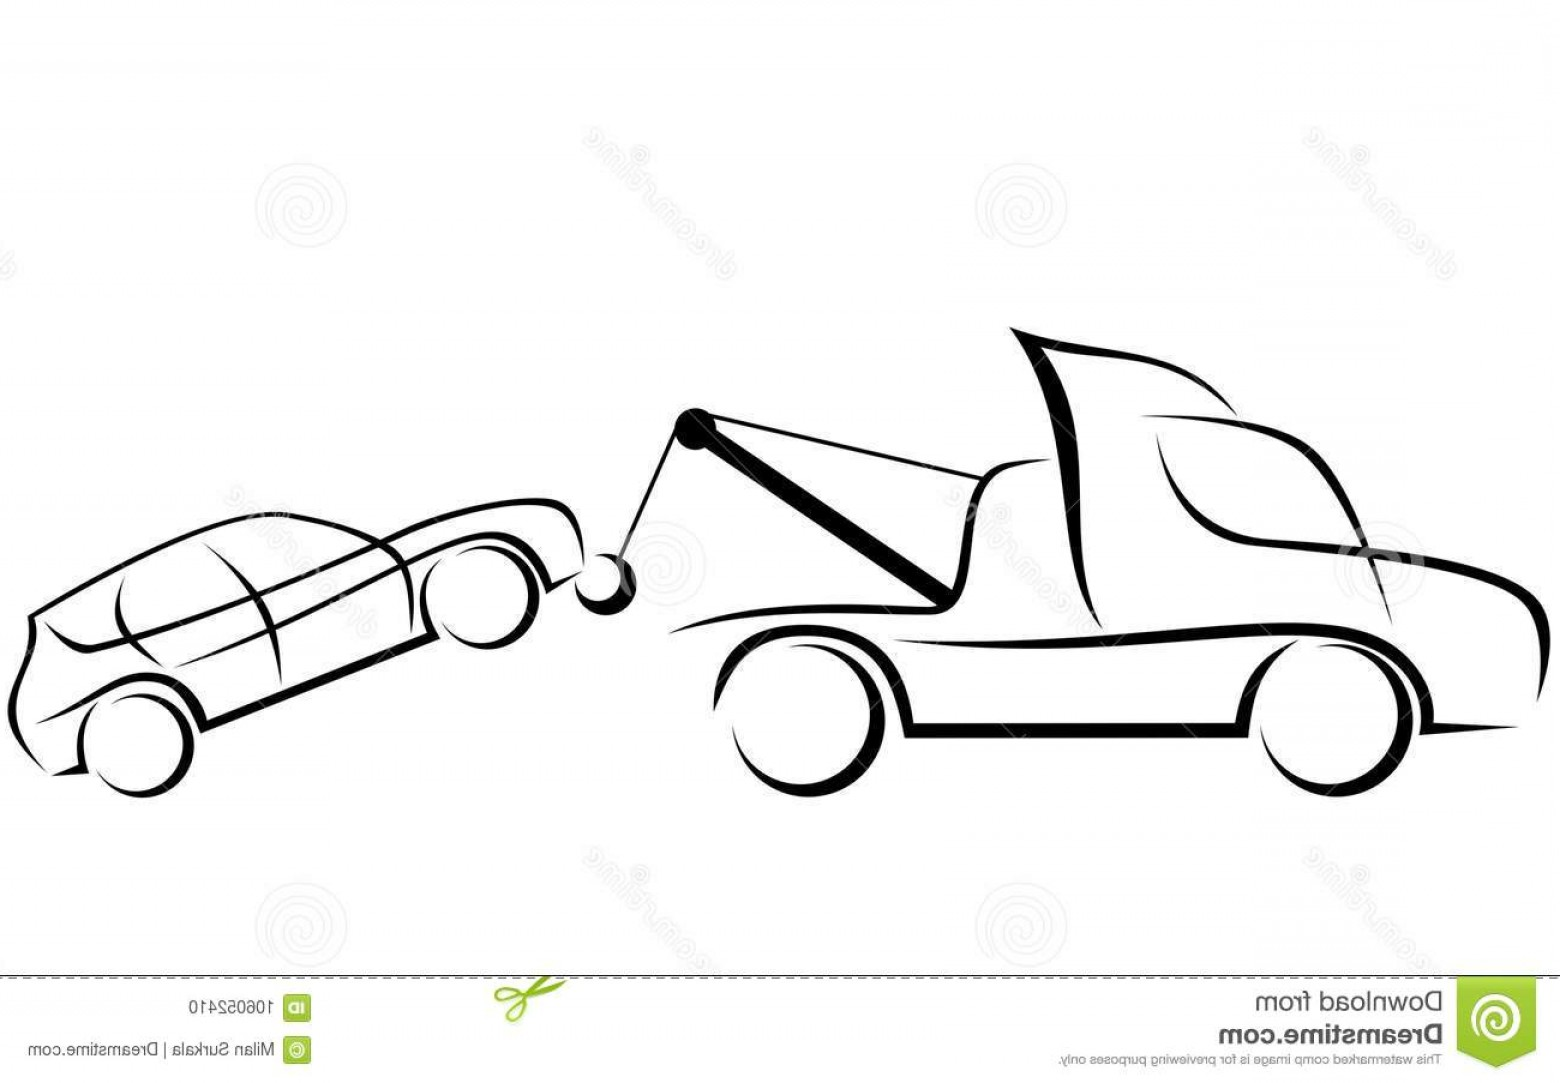 Towing Truck Hook Vector: Dynamic Illustration Tow Truck Car Helping To Transport Damaged Suv Image